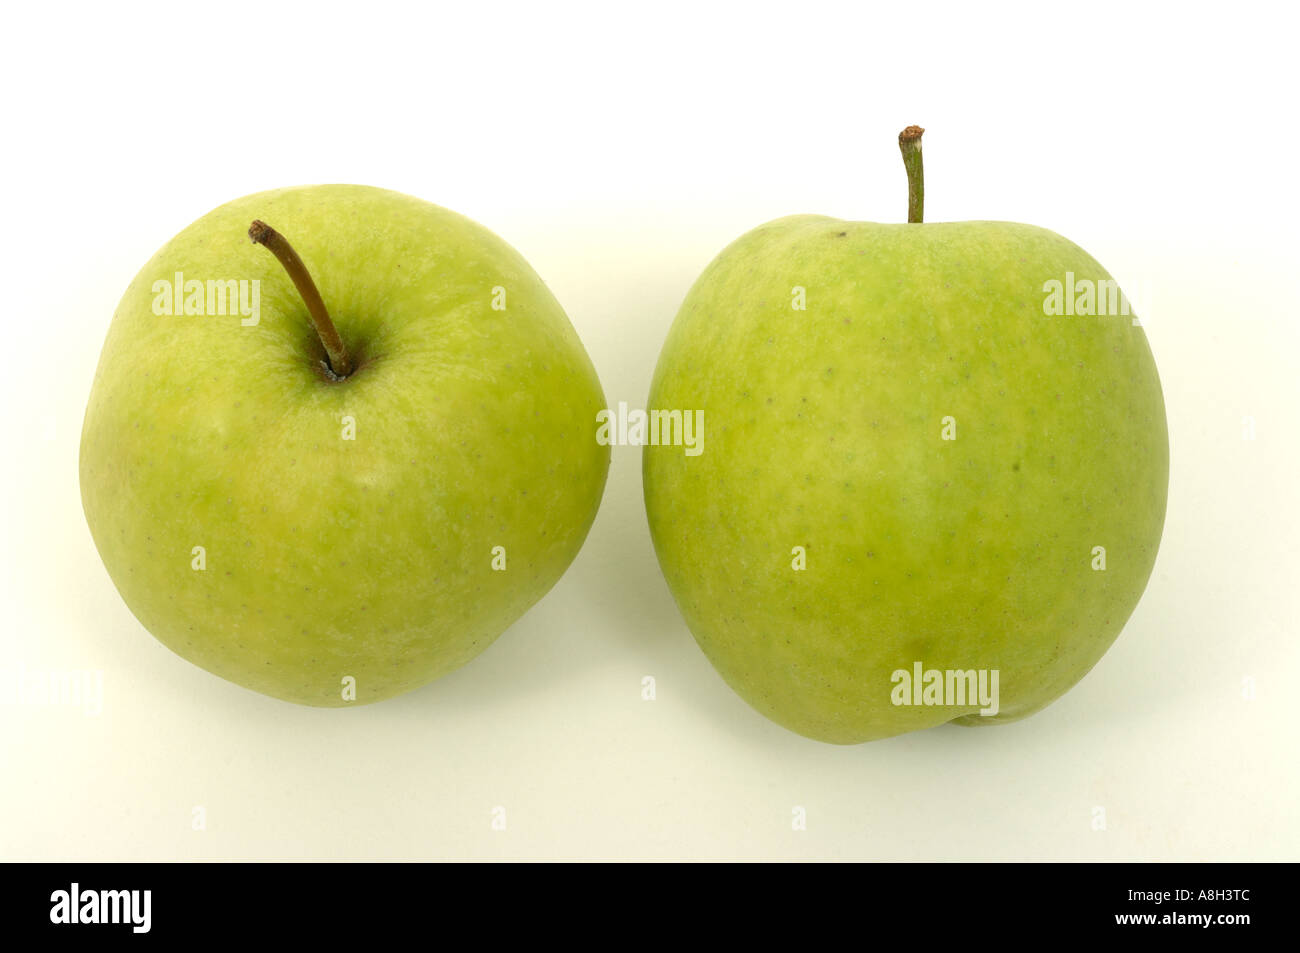 Golden Delicious apples supermarket bought and in normal shop condition - Stock Image